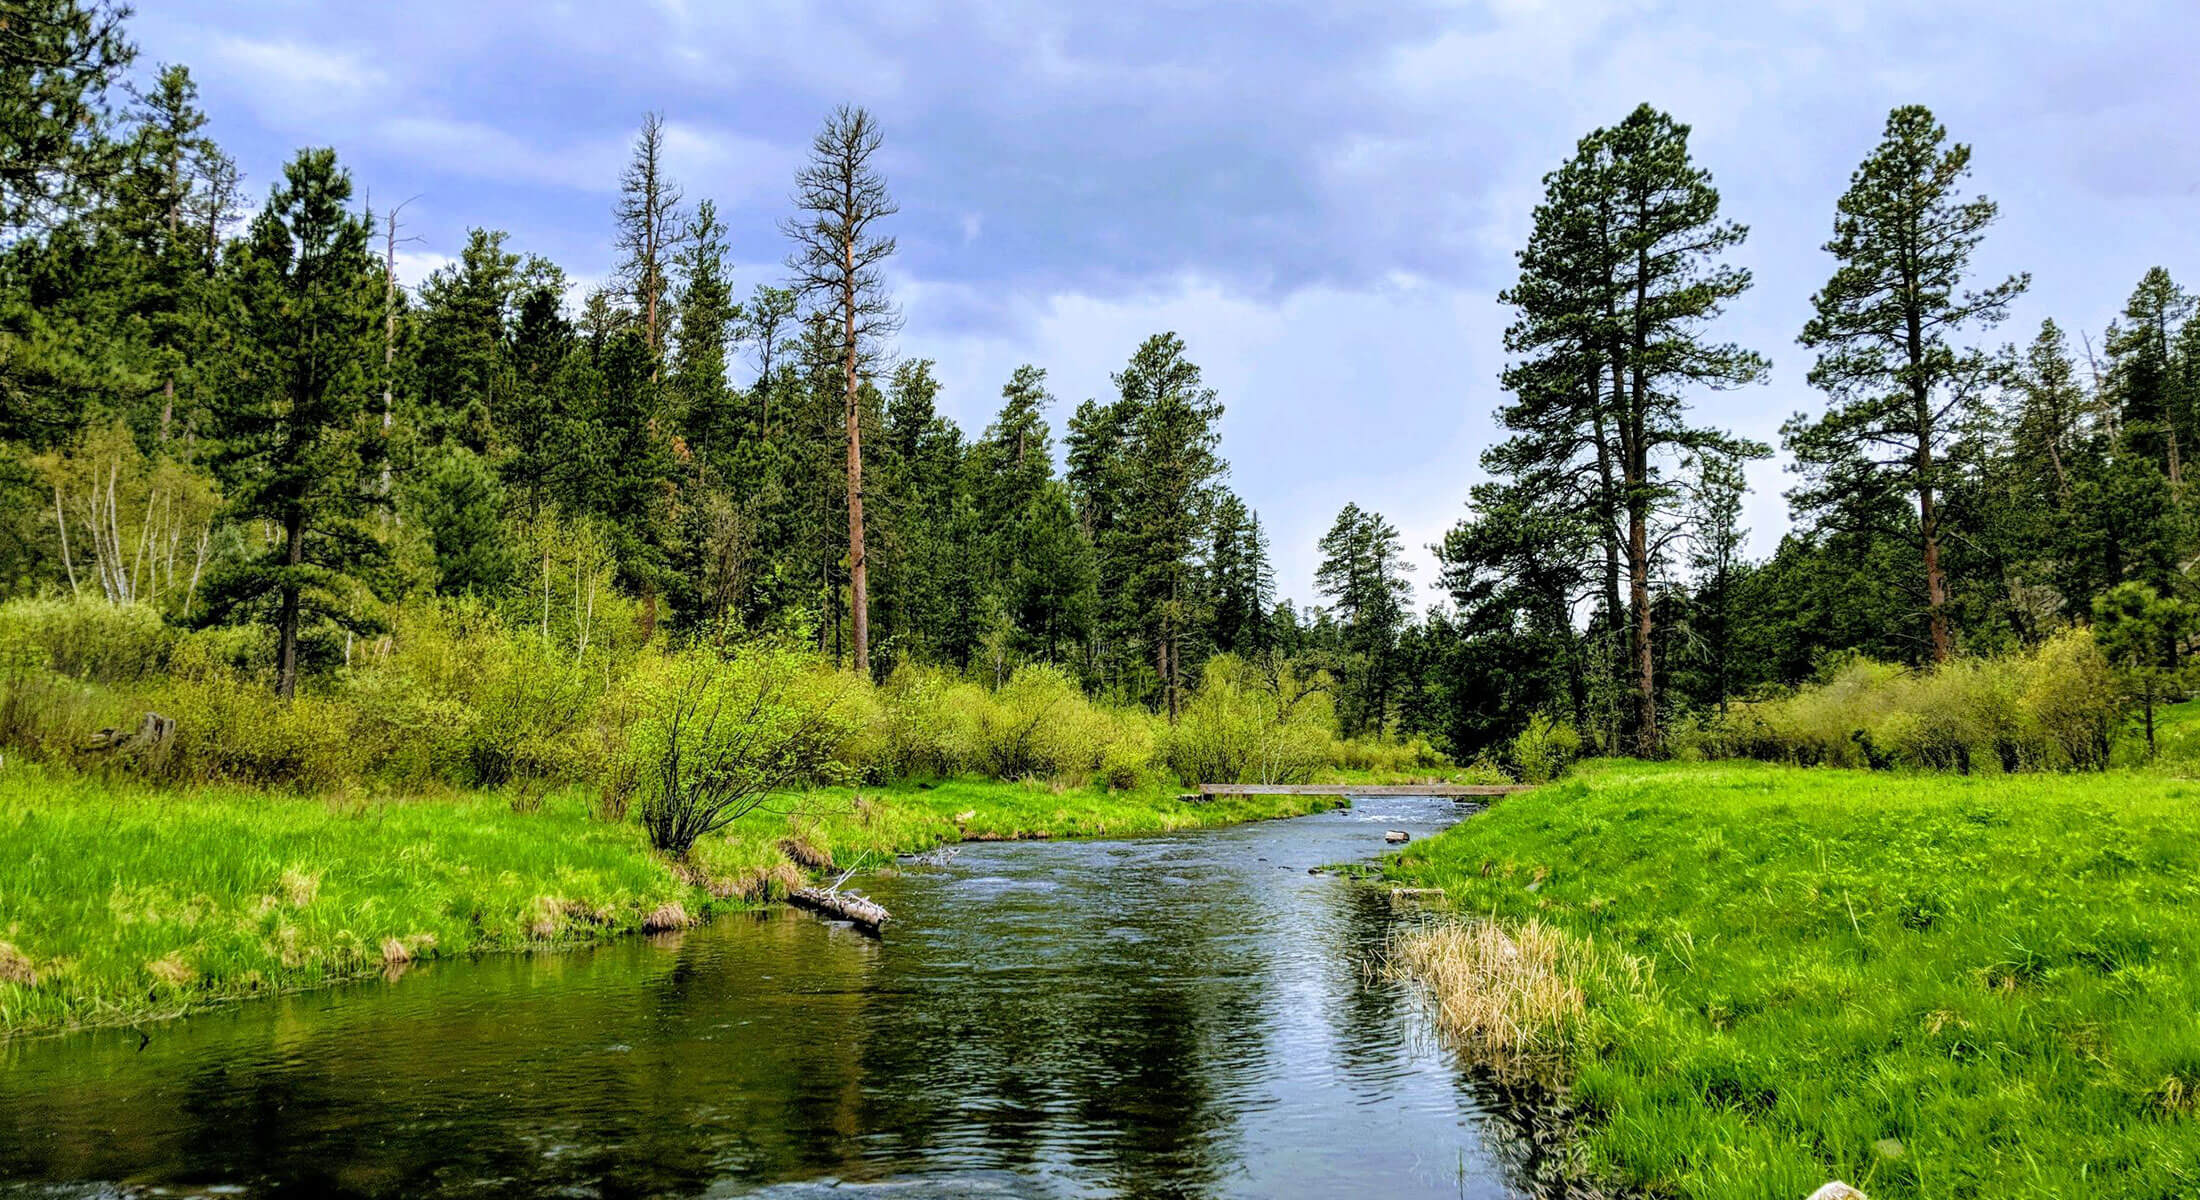 Spring Creek in the Black Hills National Forest